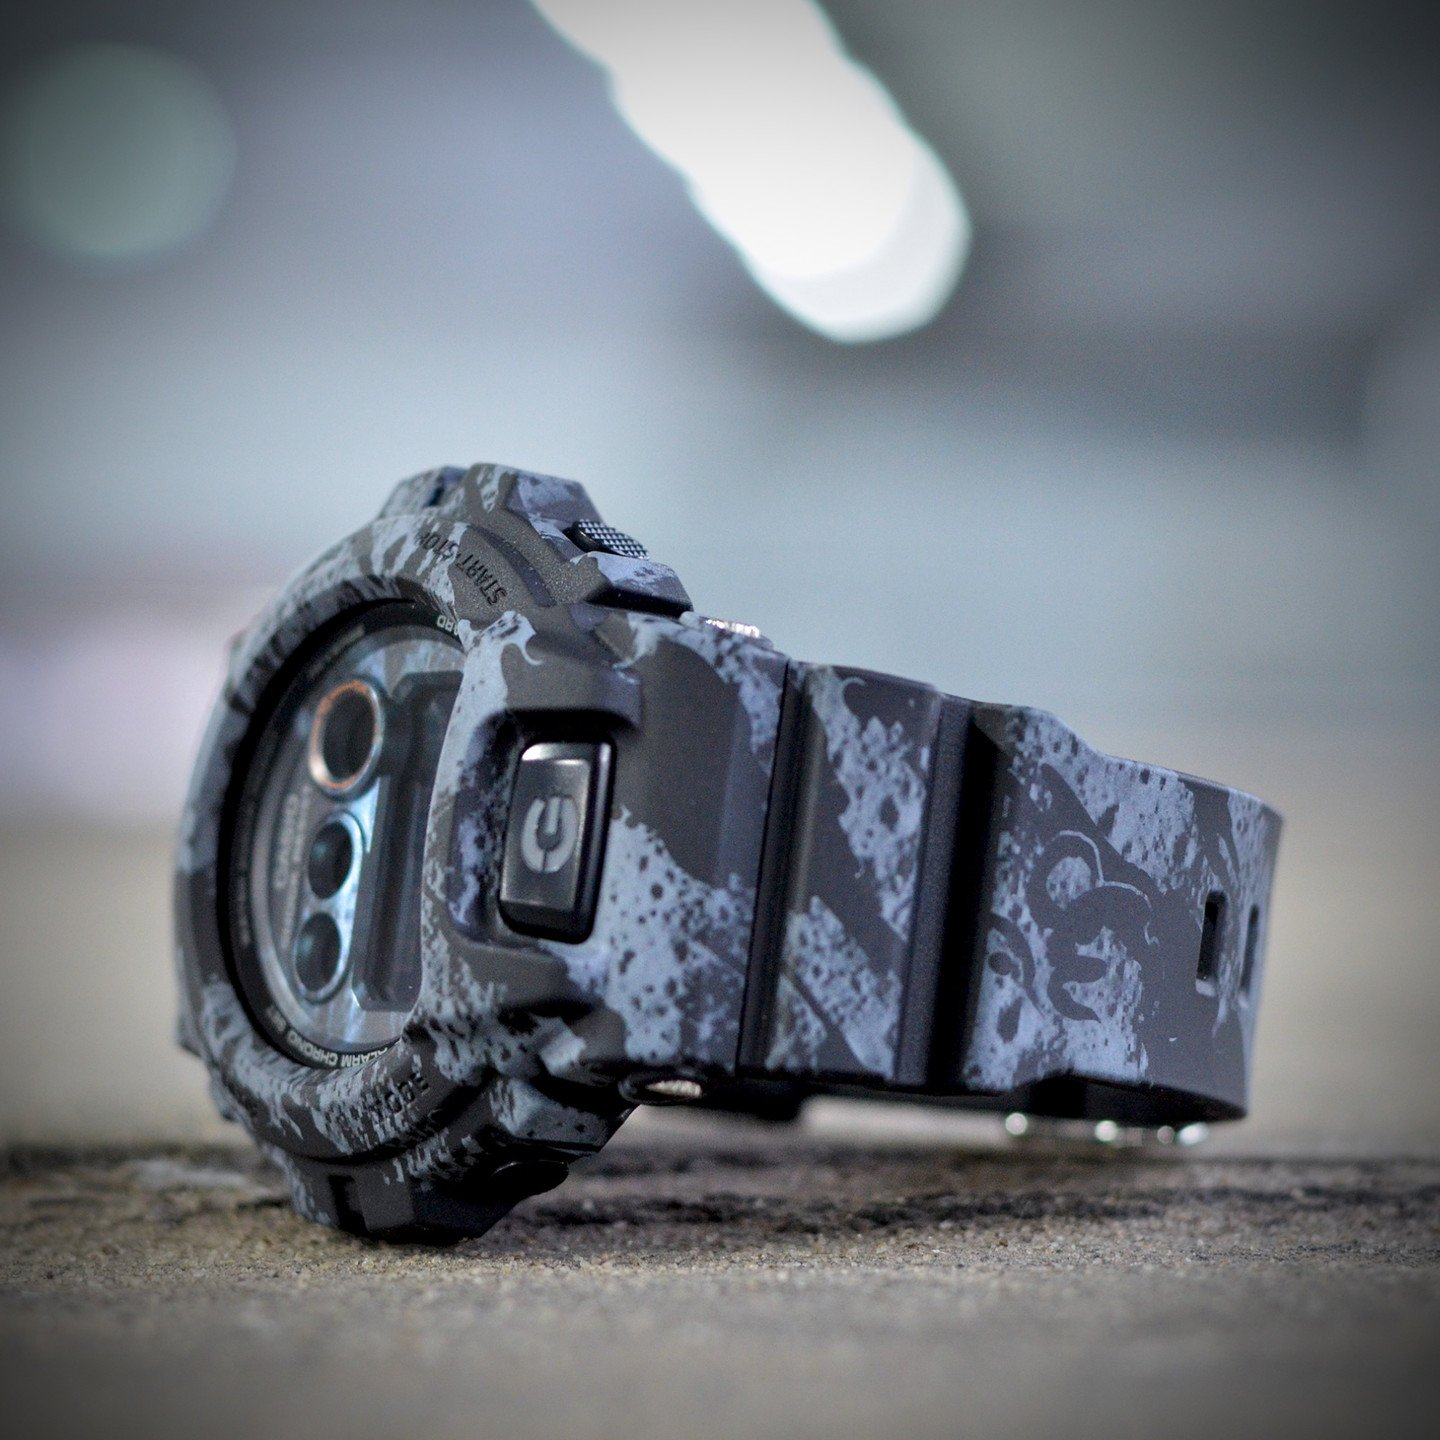 Casio G-Shock x Maharishi Stone Grey / Black GD-X6900MH-1ER